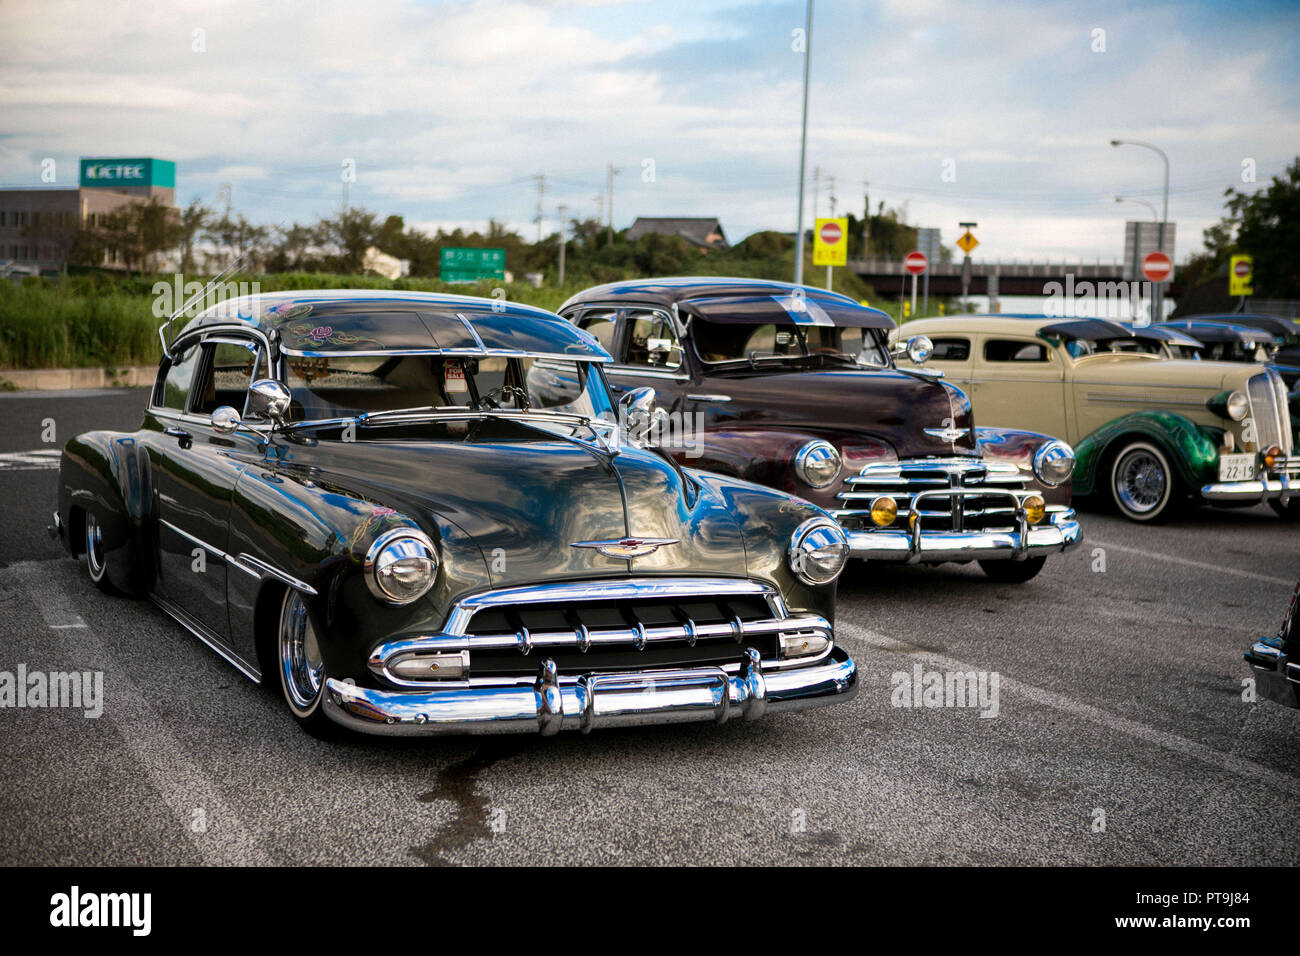 Lowrider Cars Stock Photos Lowrider Cars Stock Images Alamy - San diego lowrider car show 2018